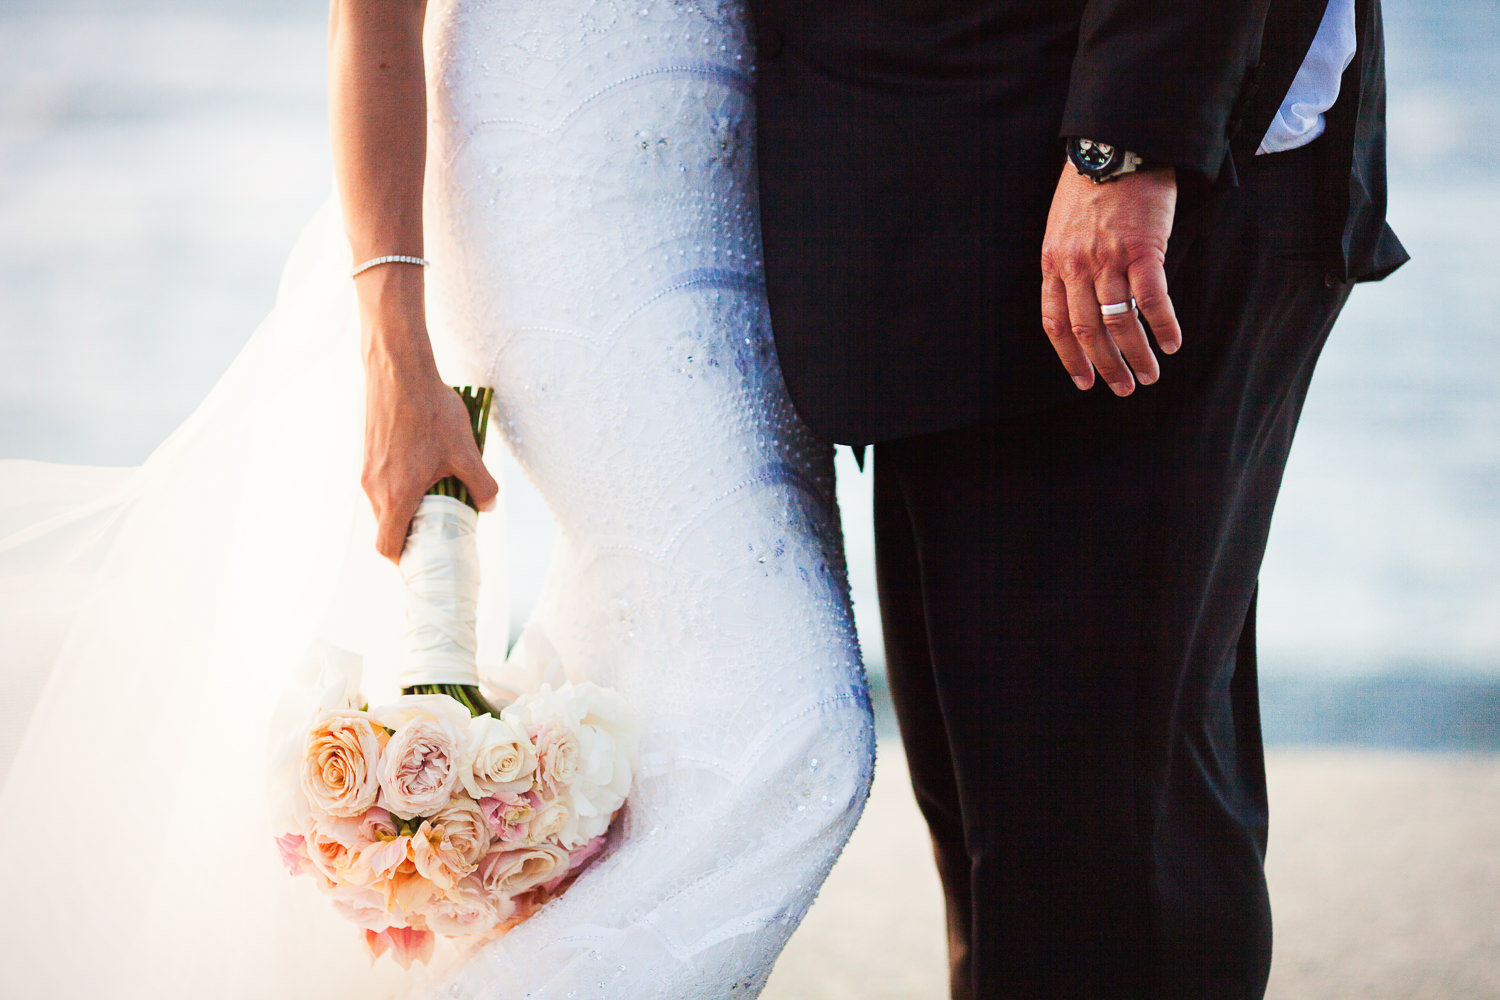 Her bouquet and his arm at the Four Seasons Hualalai by Big Island wedding photographer Callaway Gable